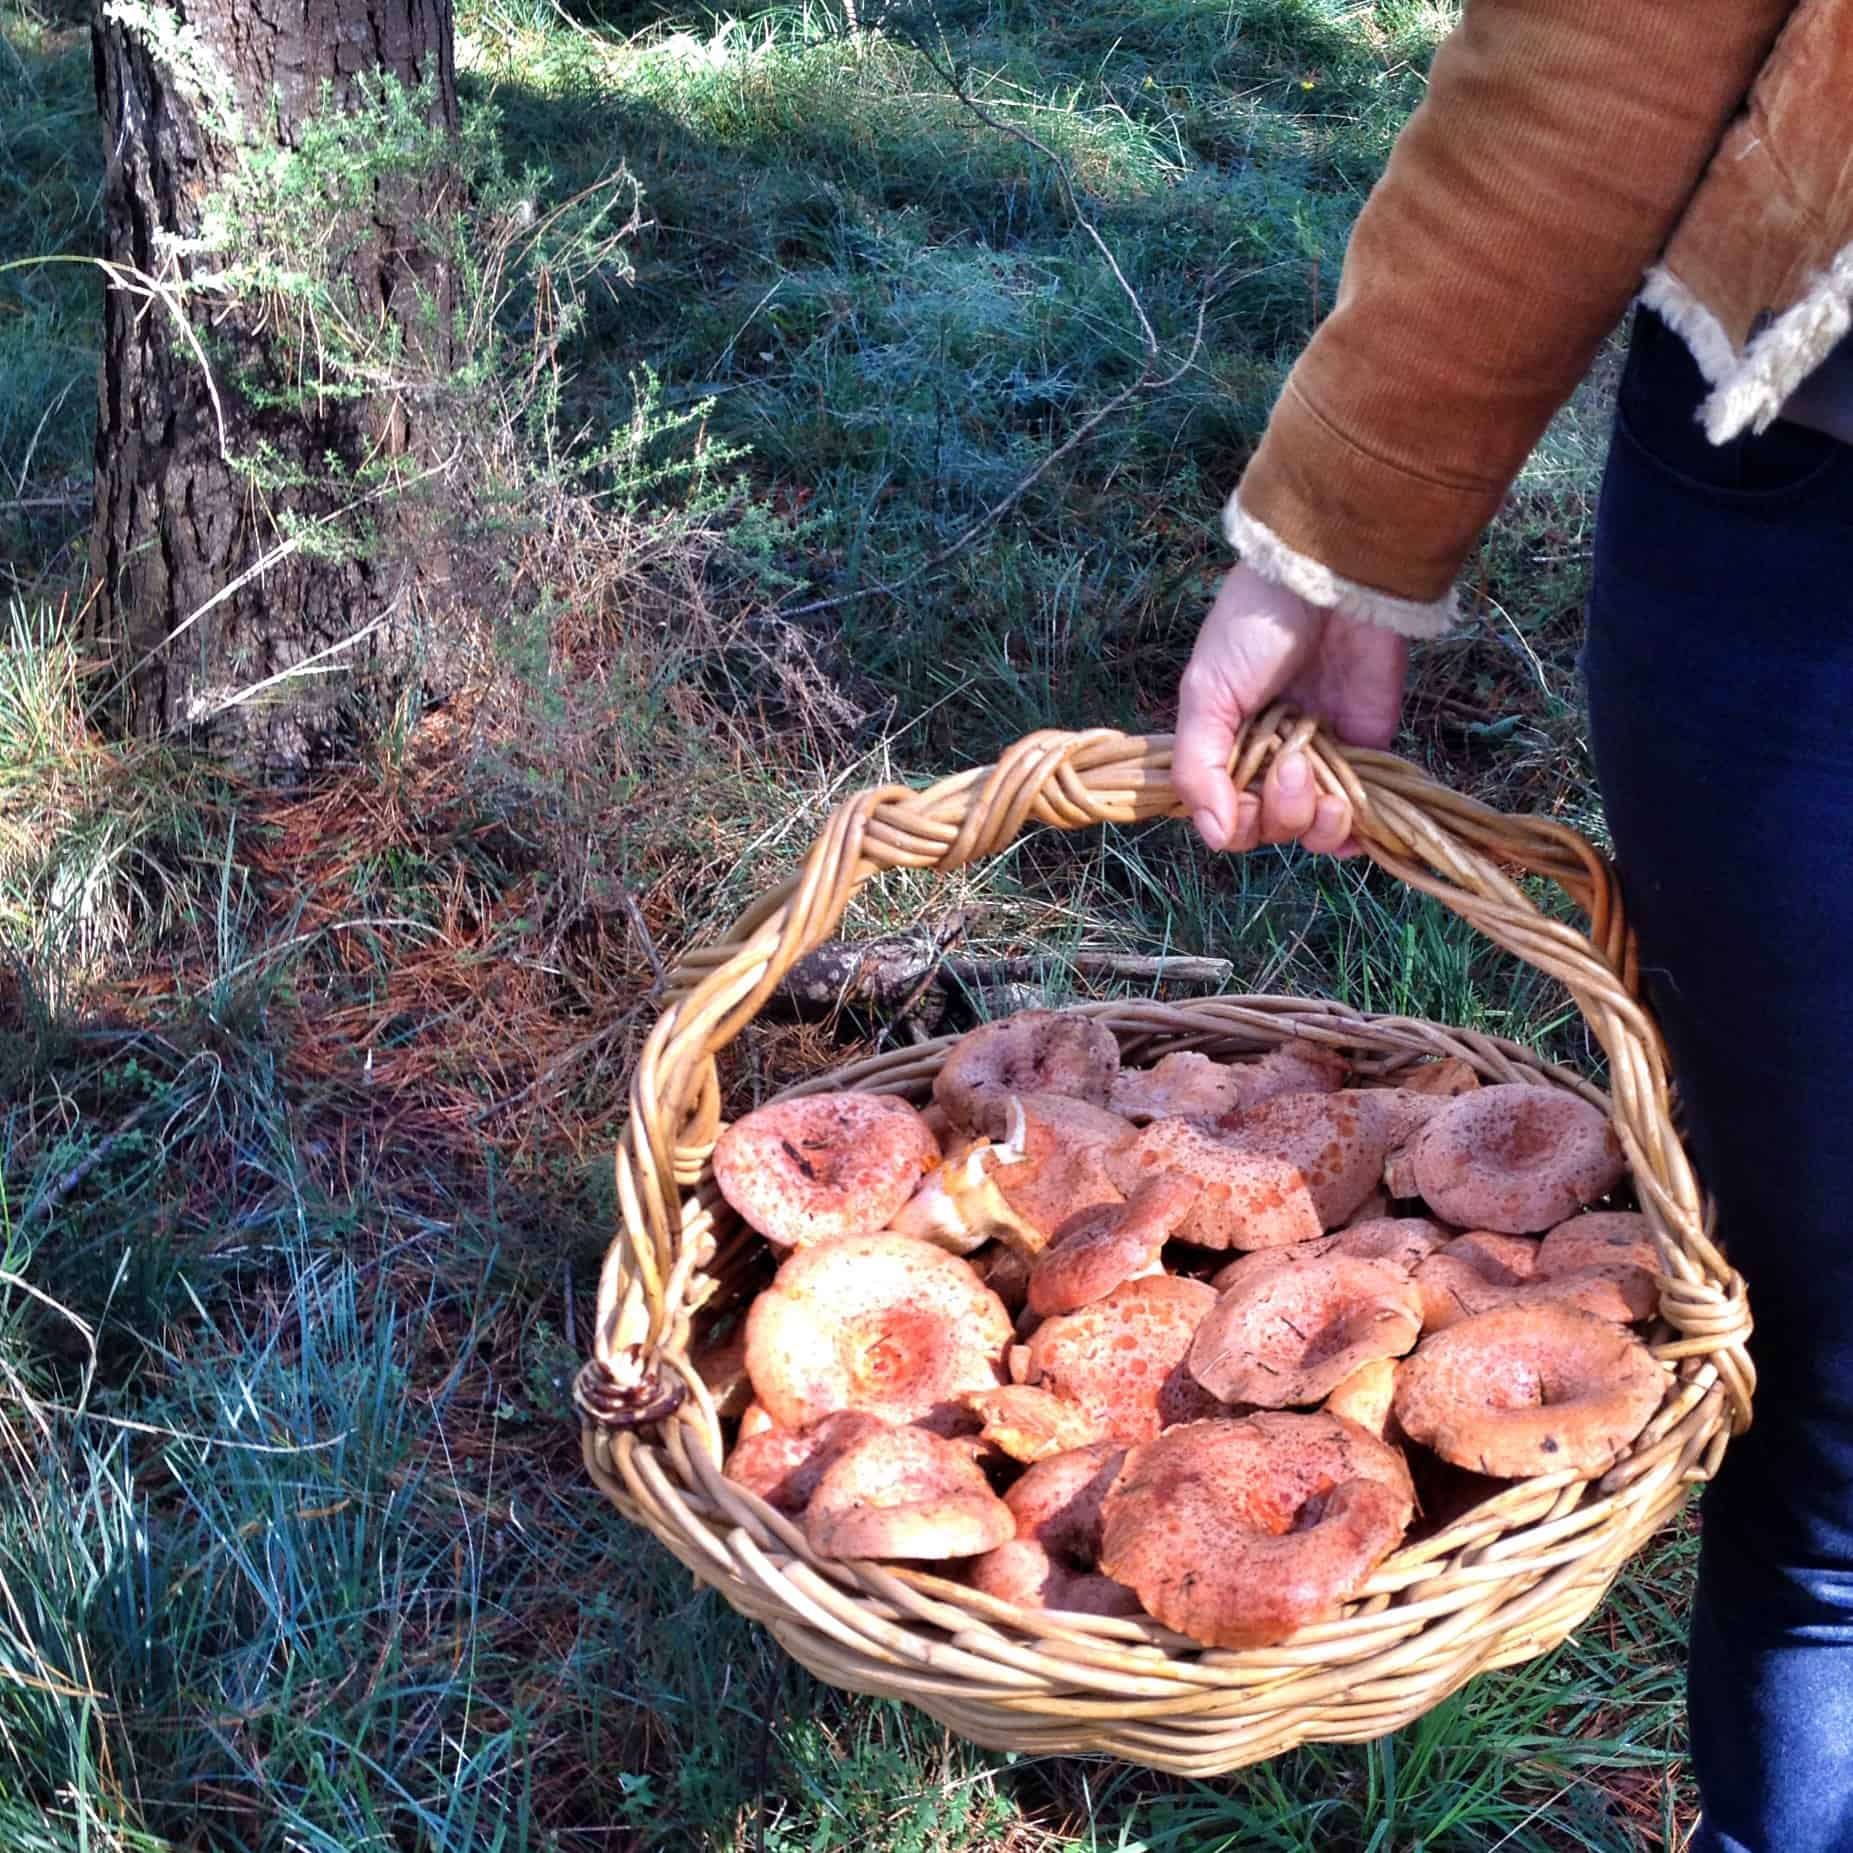 A basket full of delicious Saffron Milk Cap mushrooms.